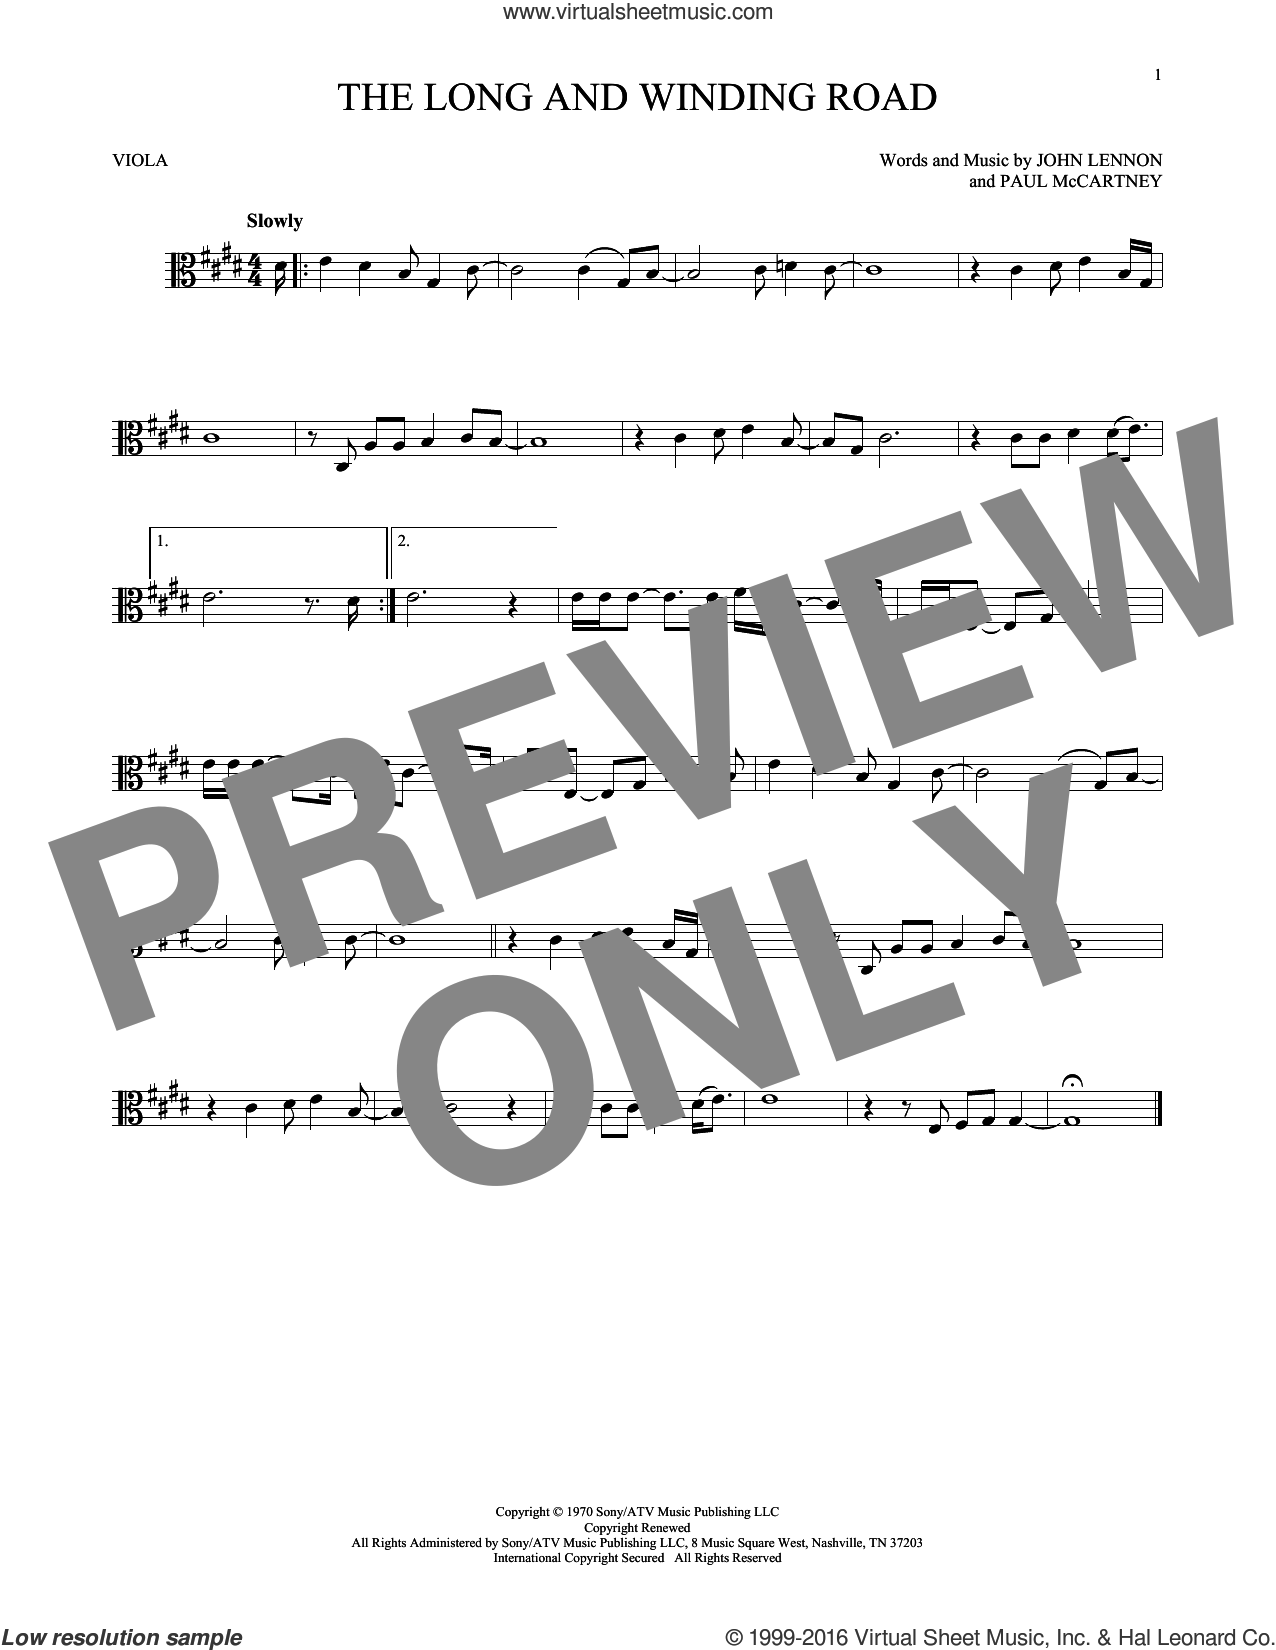 The Long And Winding Road sheet music for viola solo by Paul McCartney